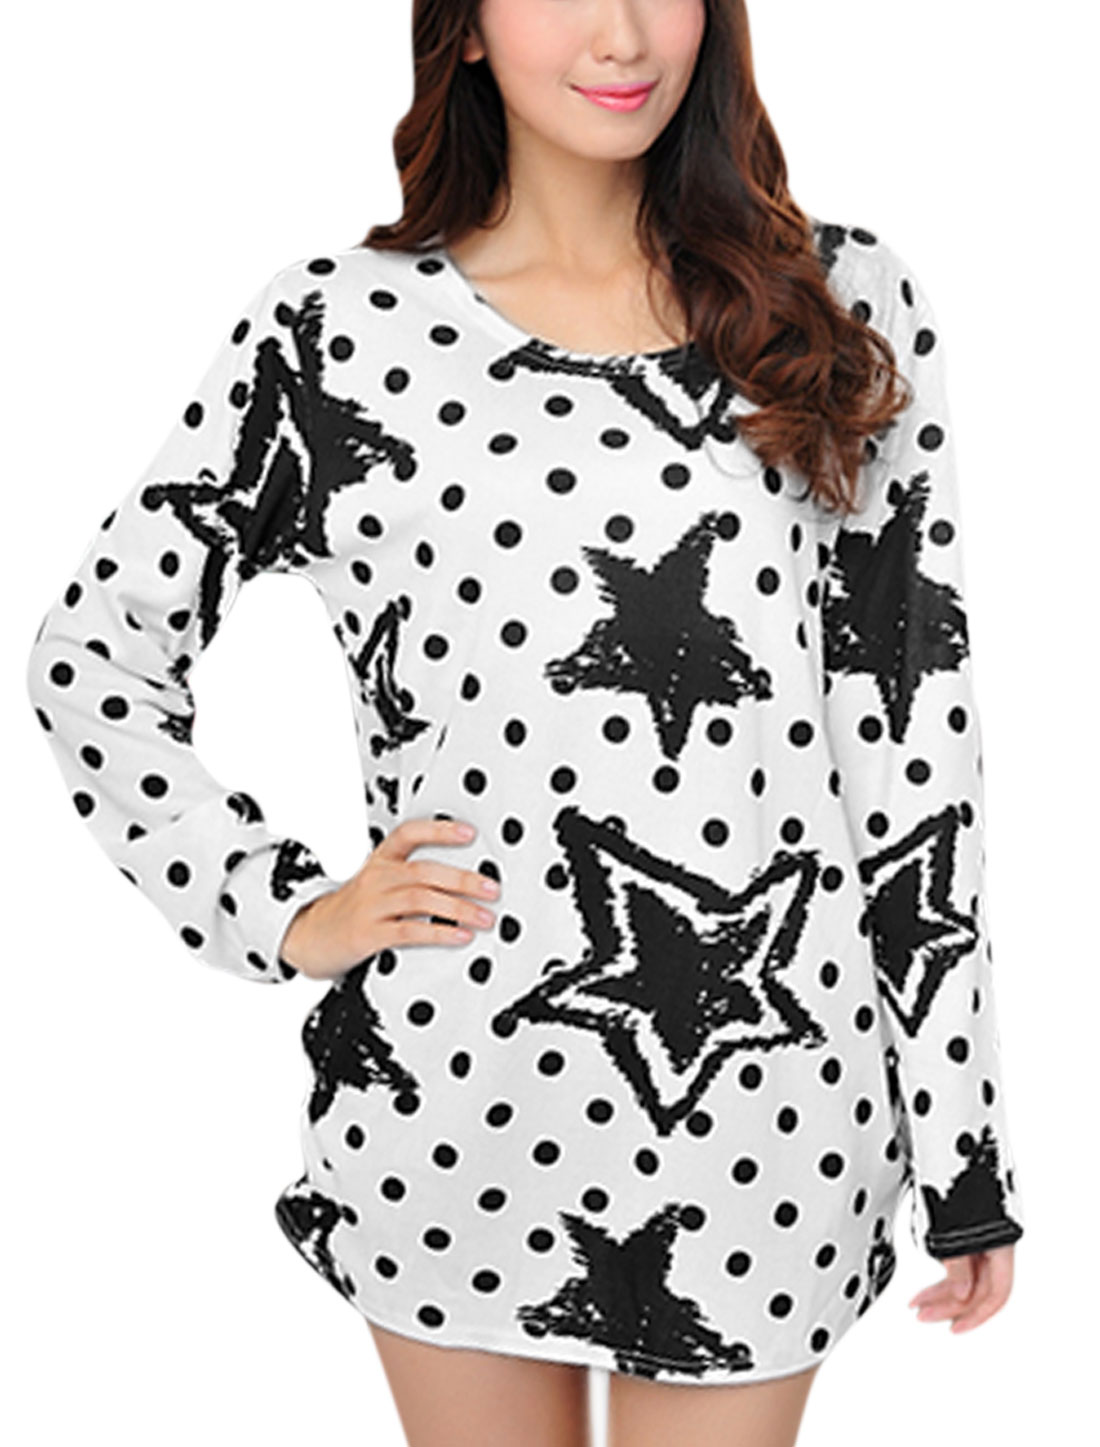 Women Stars Dots Prints Round Neck Long Sleeve Tunic Knit Shirt White S